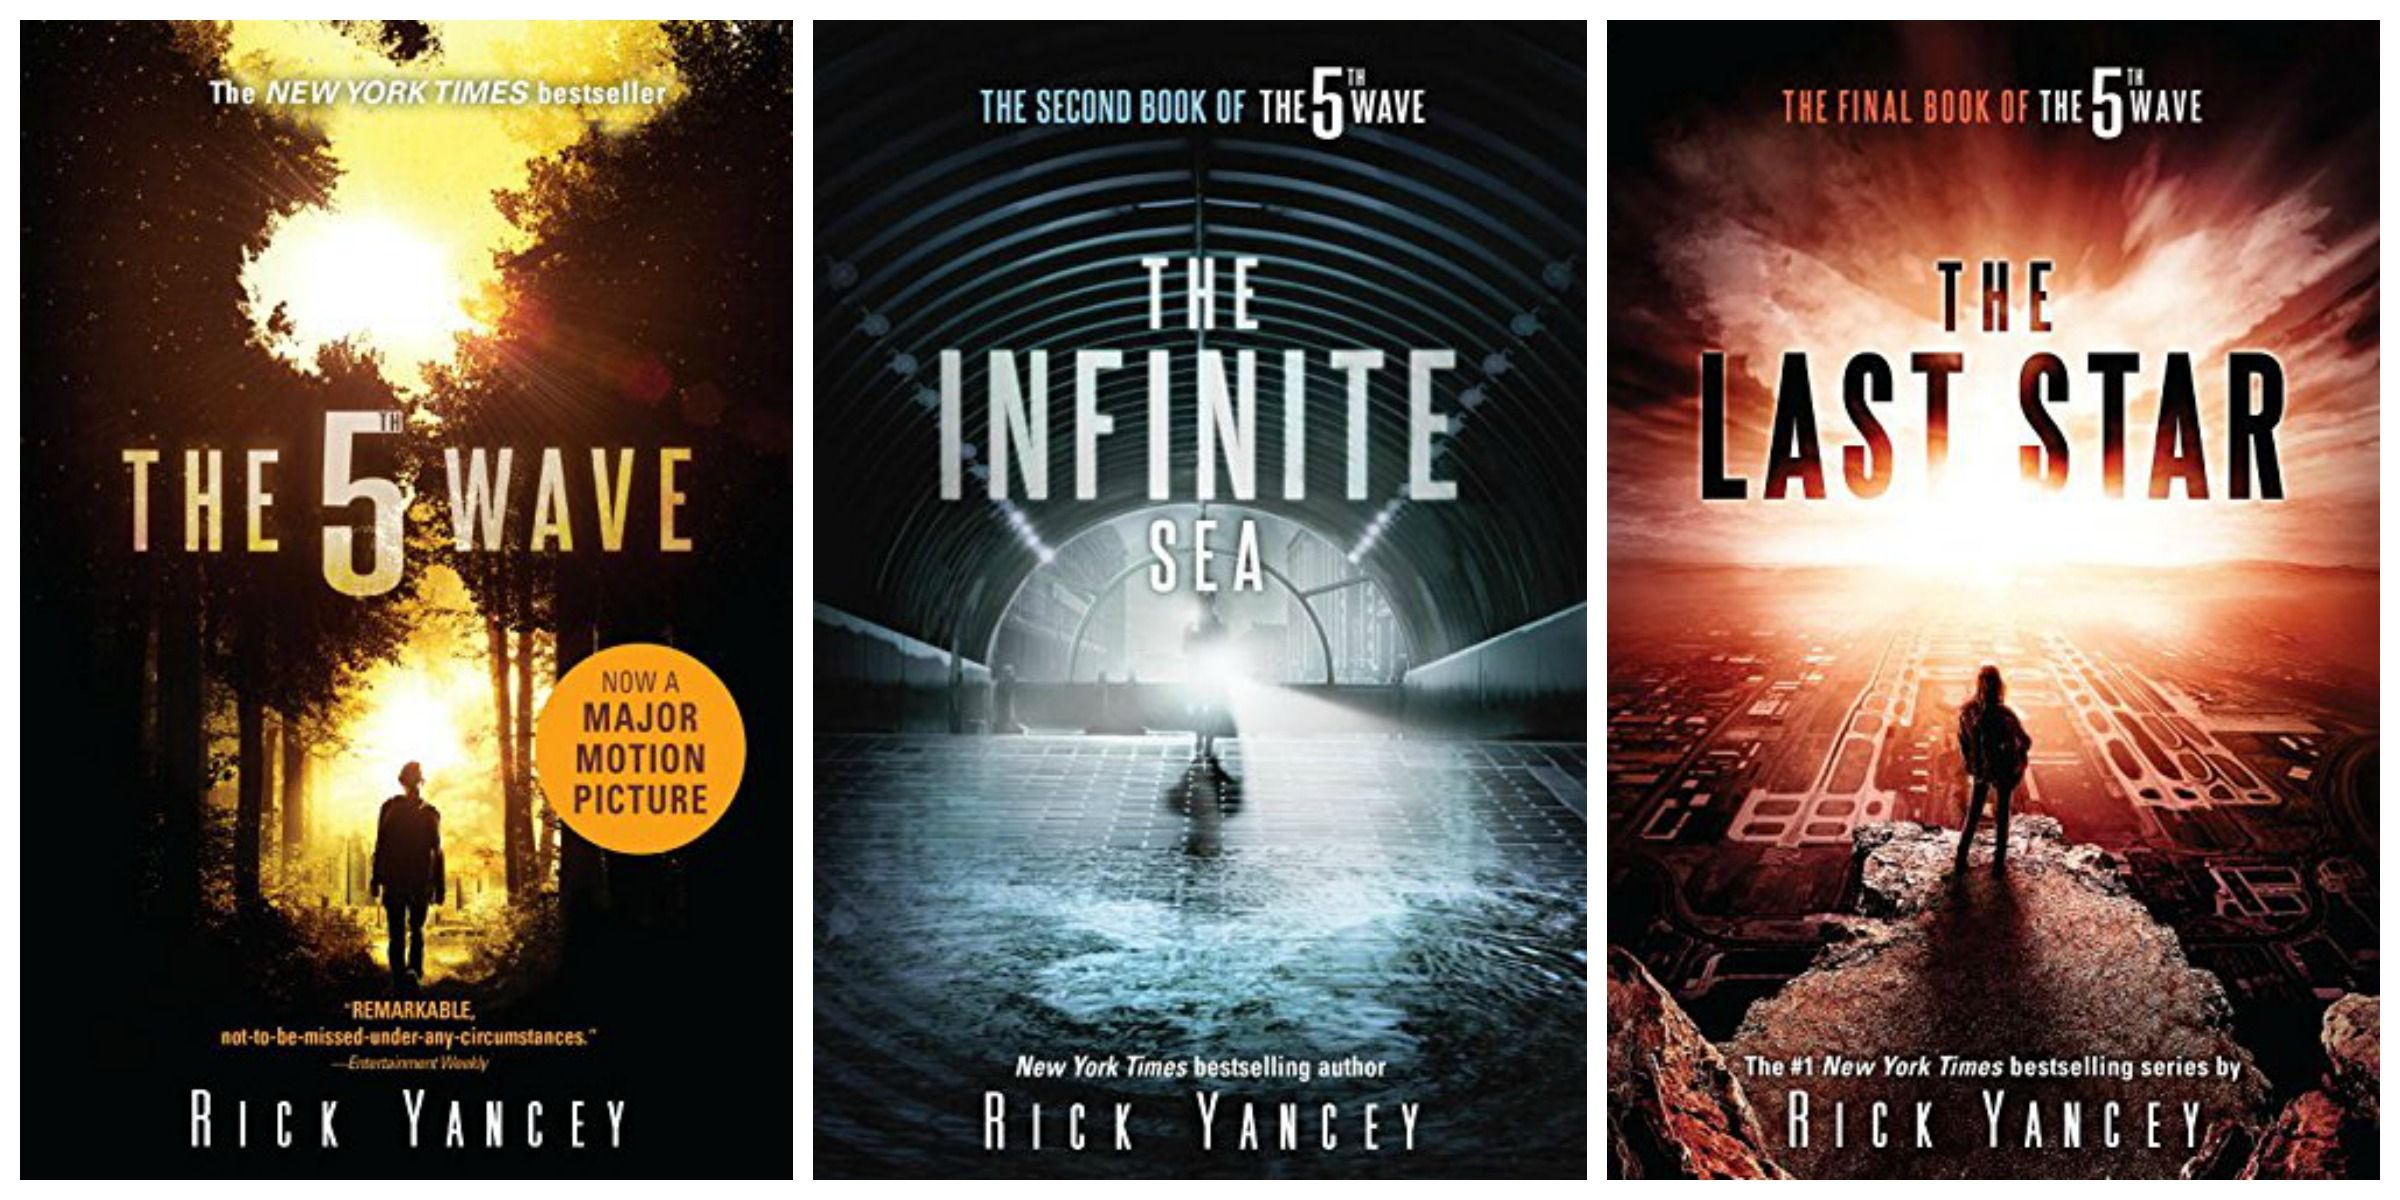 Humanity Survives | Books, The fifth wave book, The 5th wave